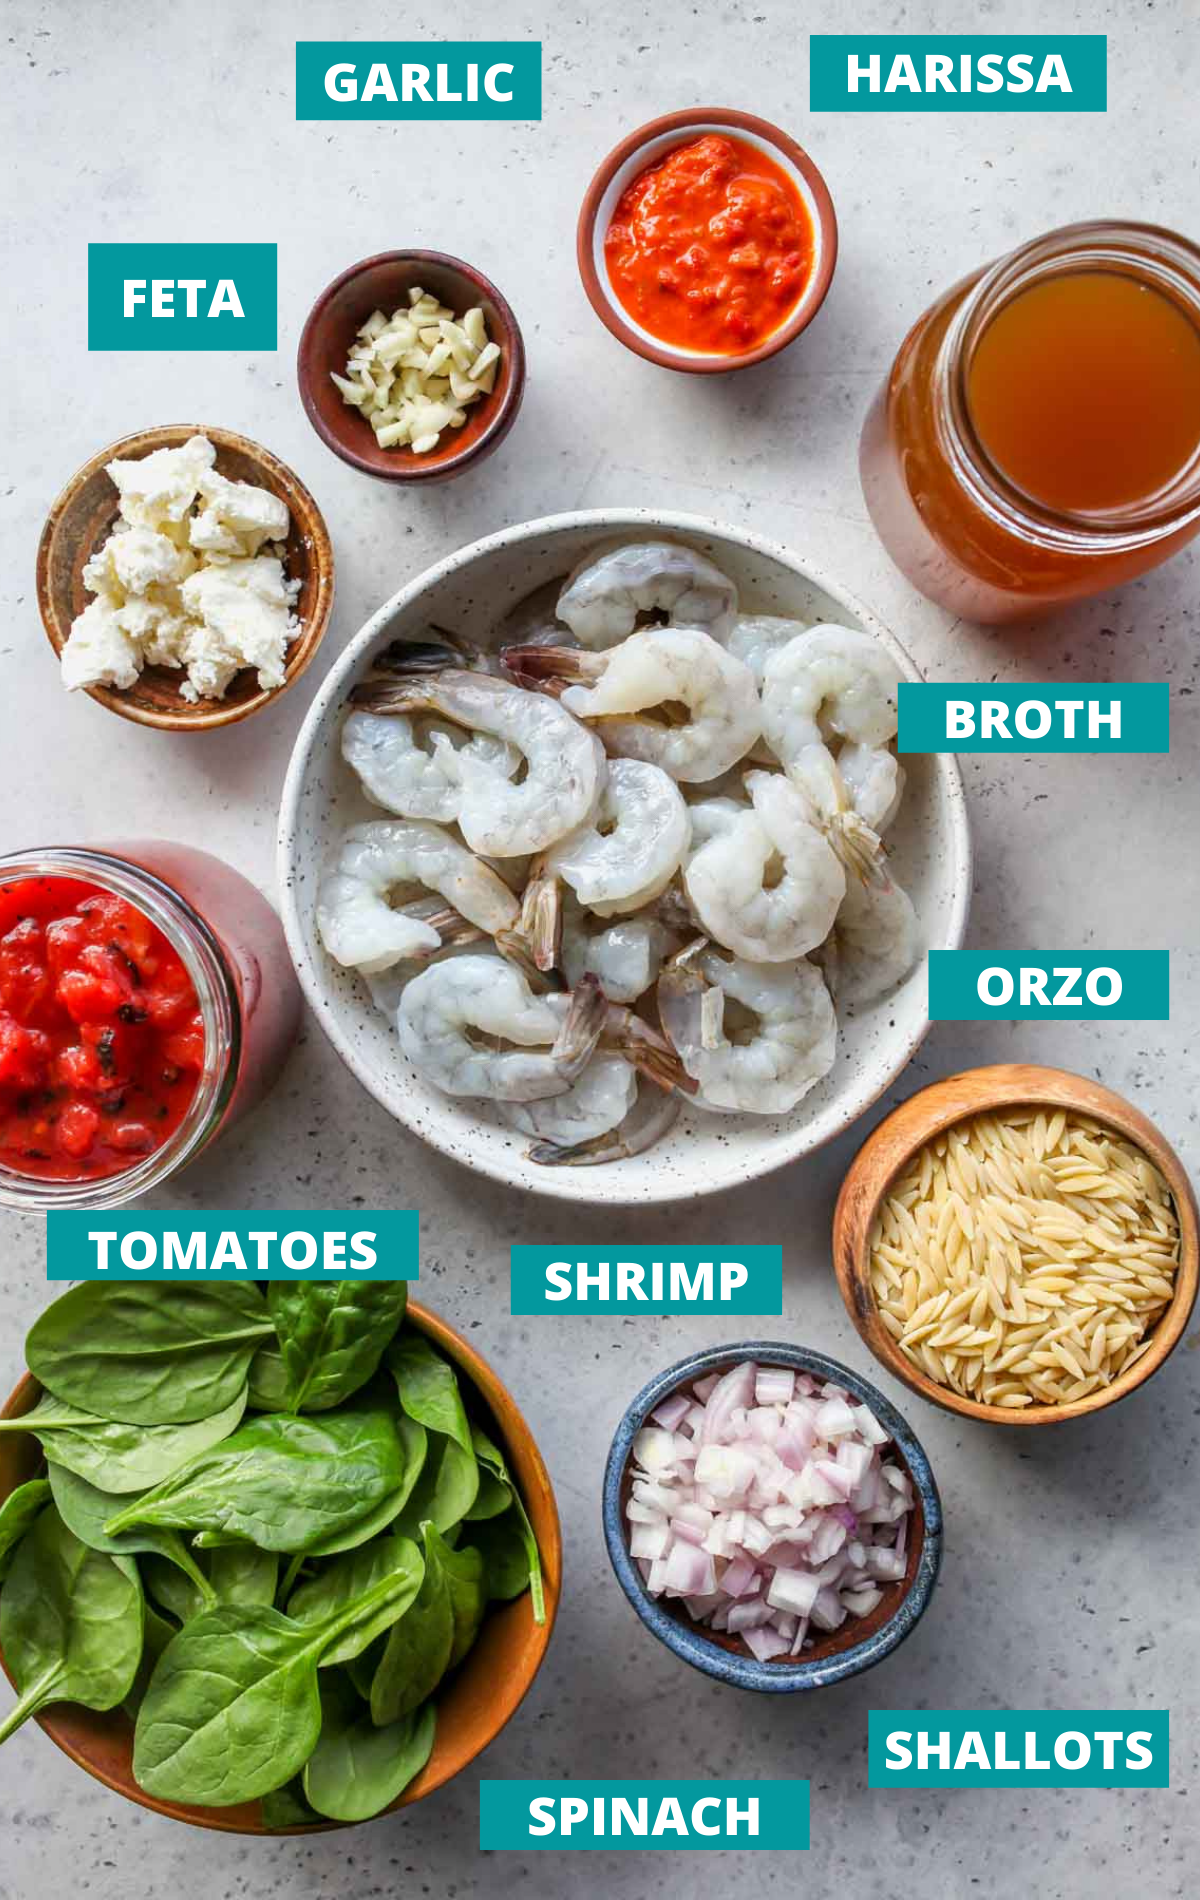 Recipe ingredients laid out on a board with blue labels